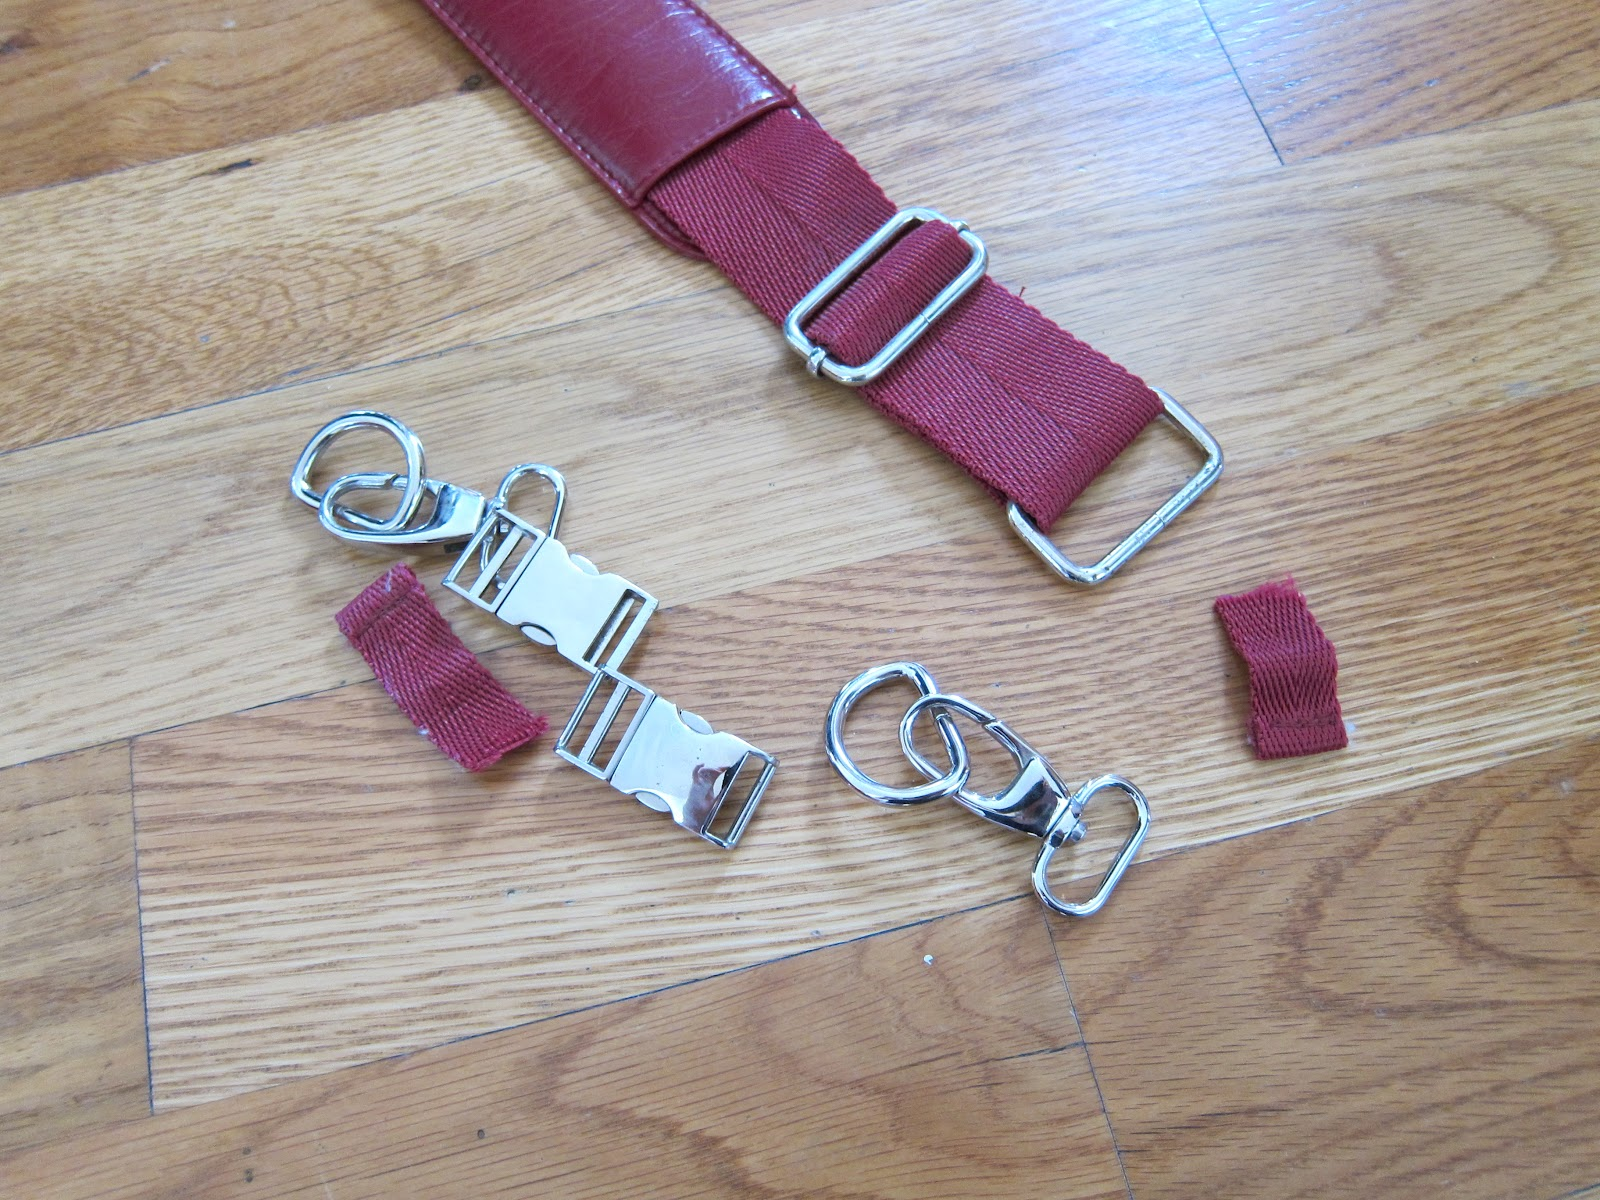 How Do You Fix A Hole In Leather Sofa And Fabric Sofas The Same Room It Yourself Divas Diy Messenger Bag For Men